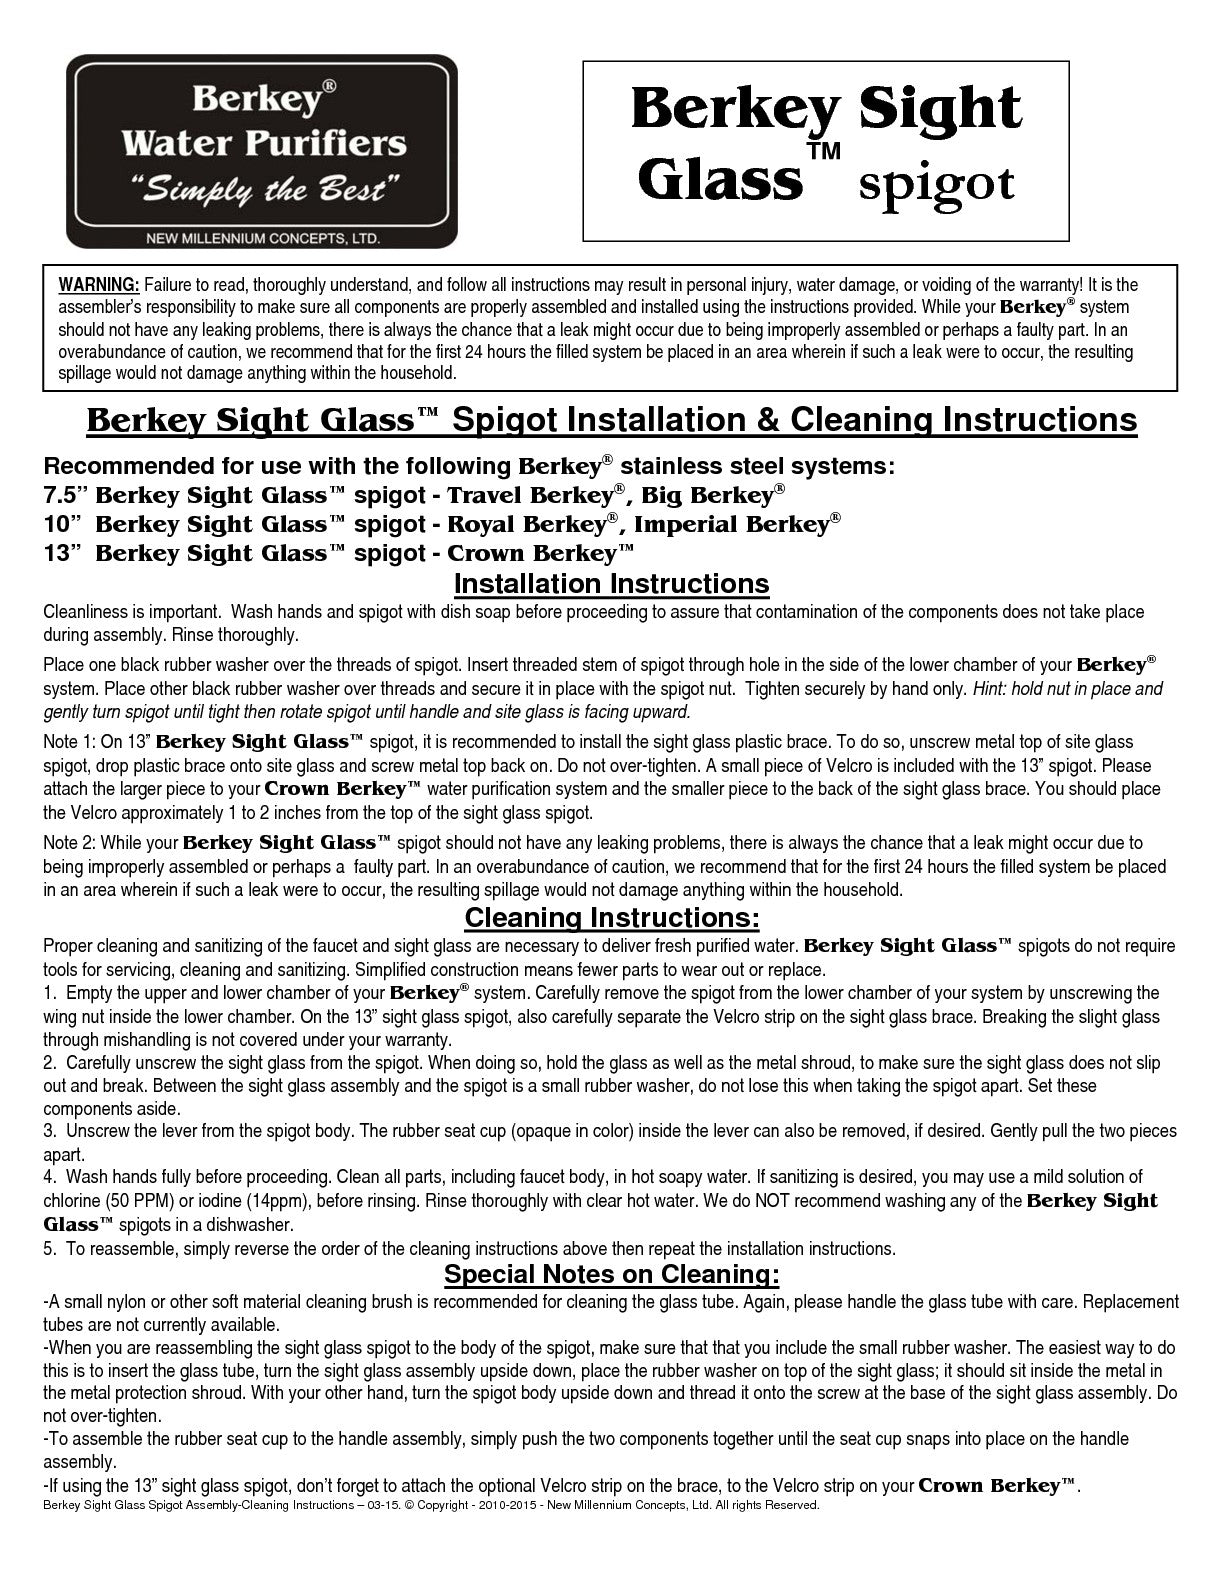 Berkey Sight Glass Spigot Instructions